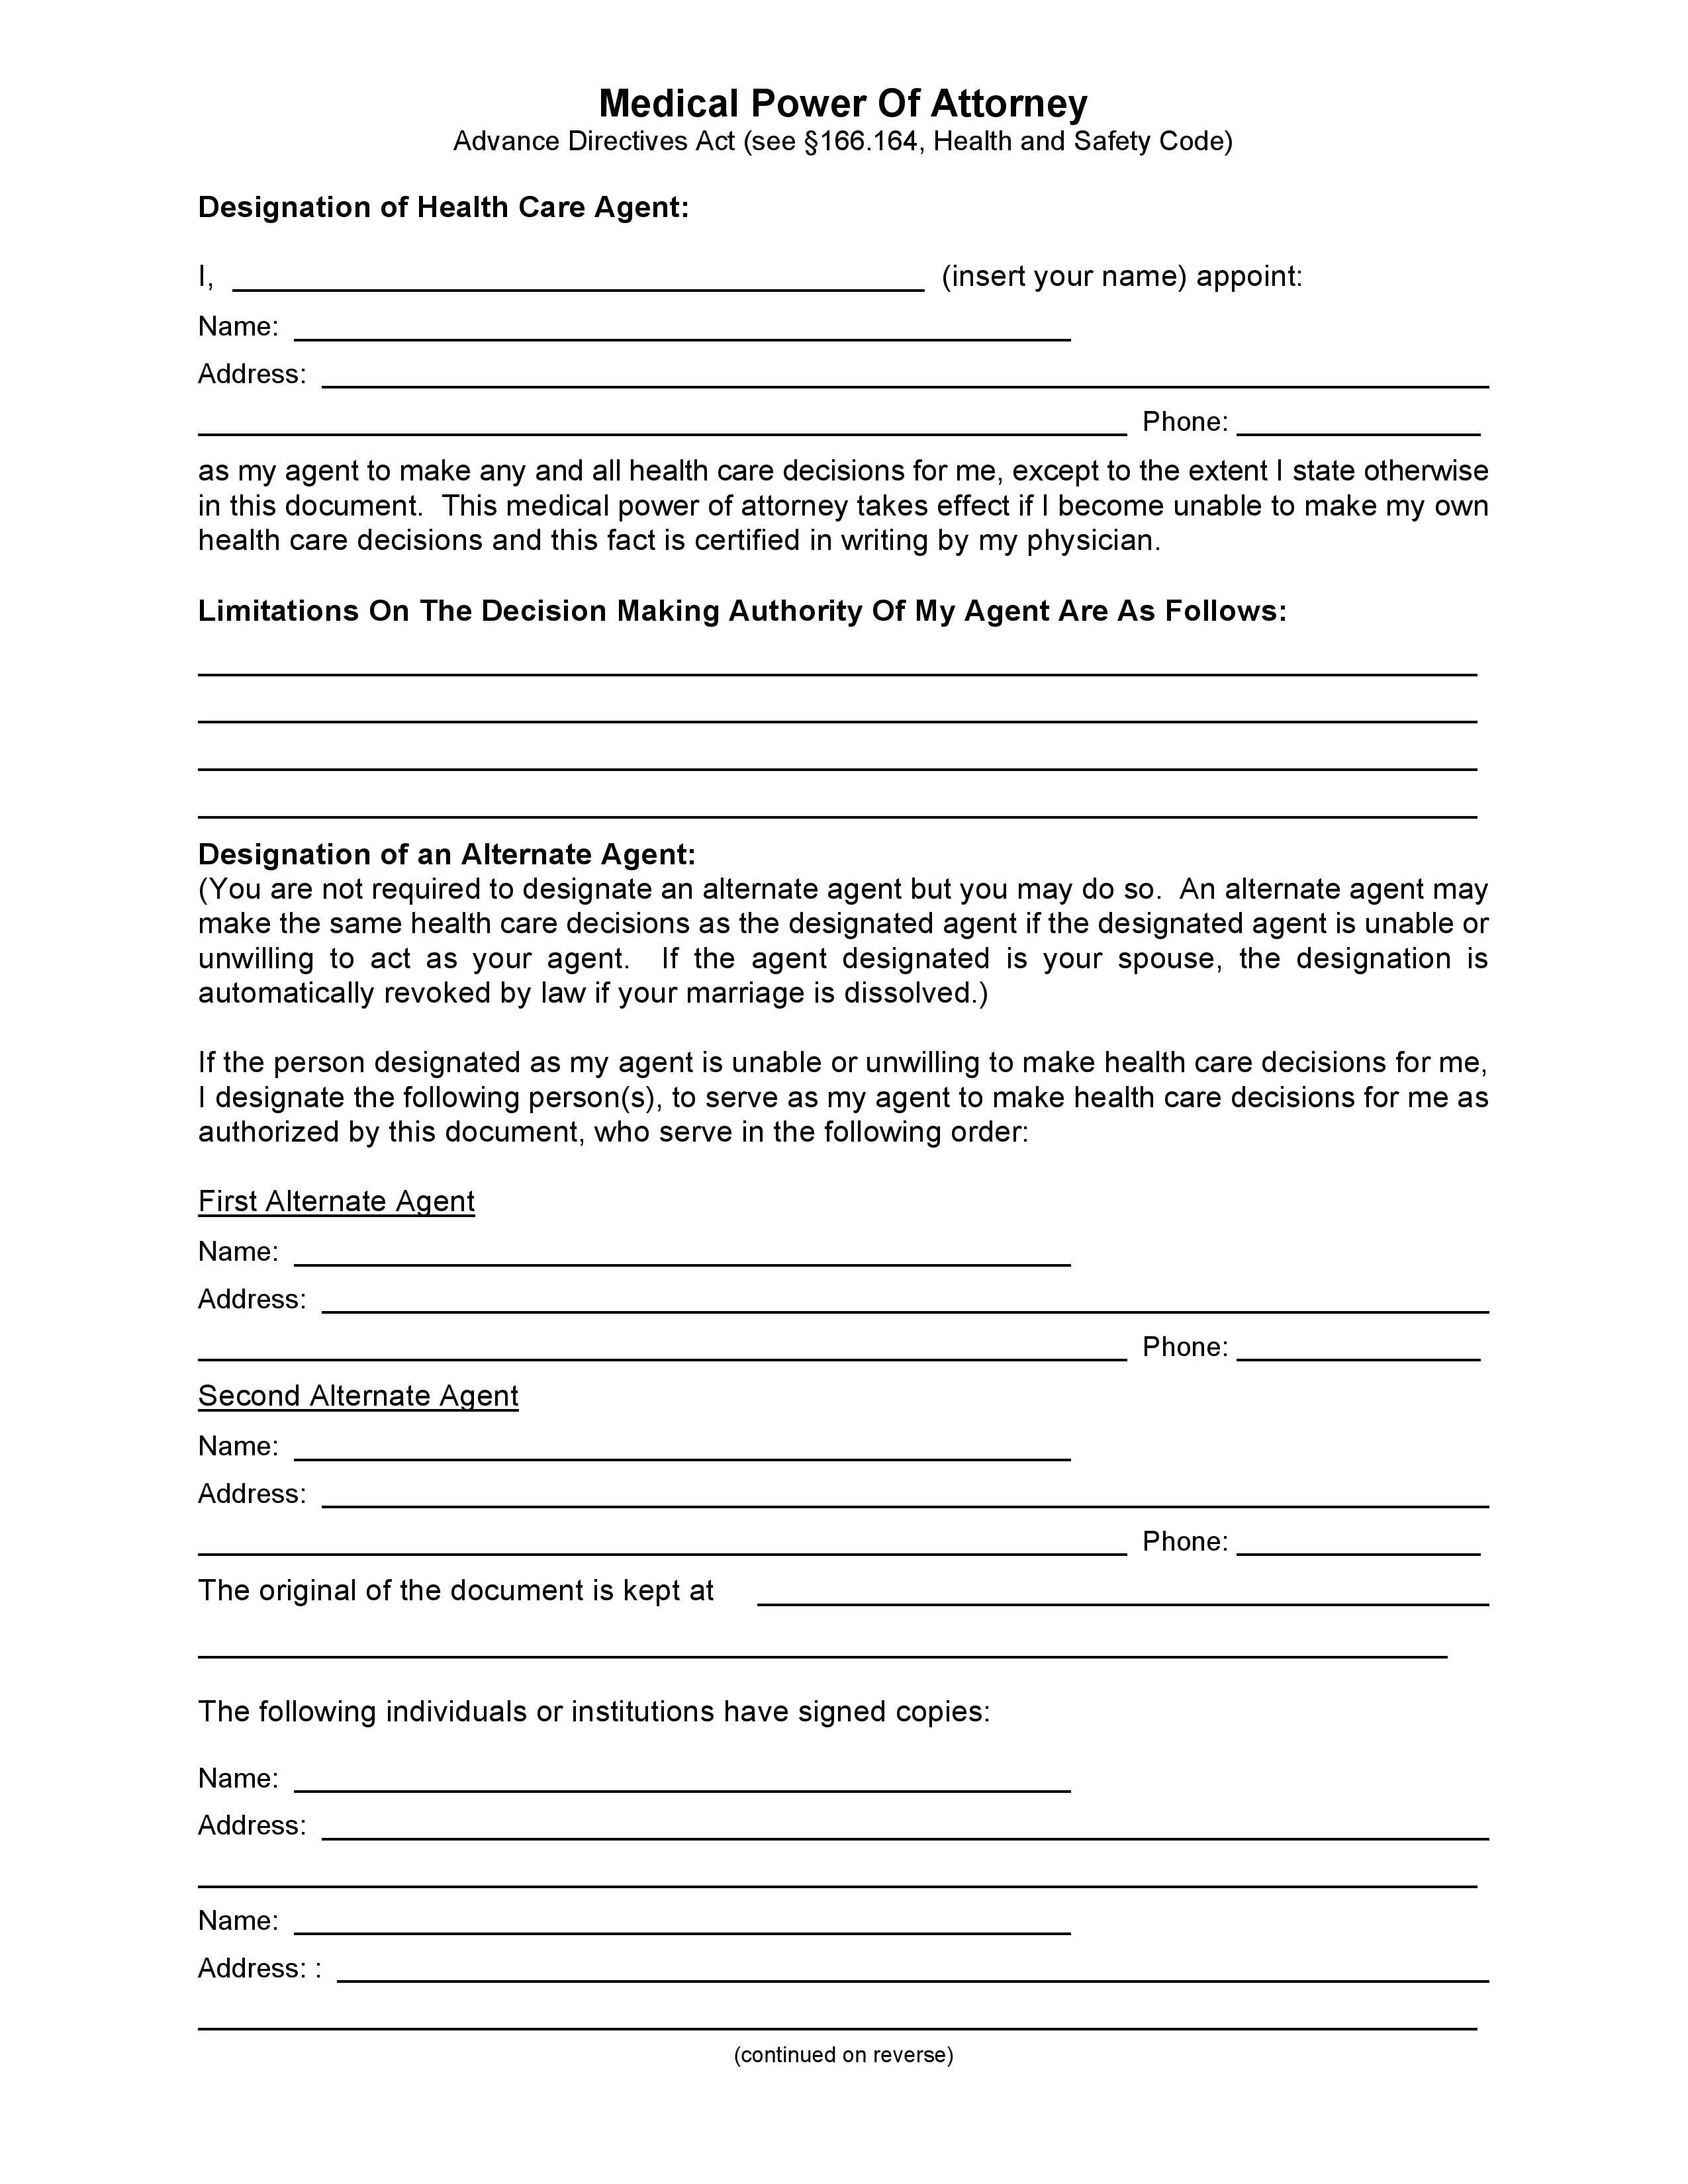 Medical Power Of Attorney Template Free